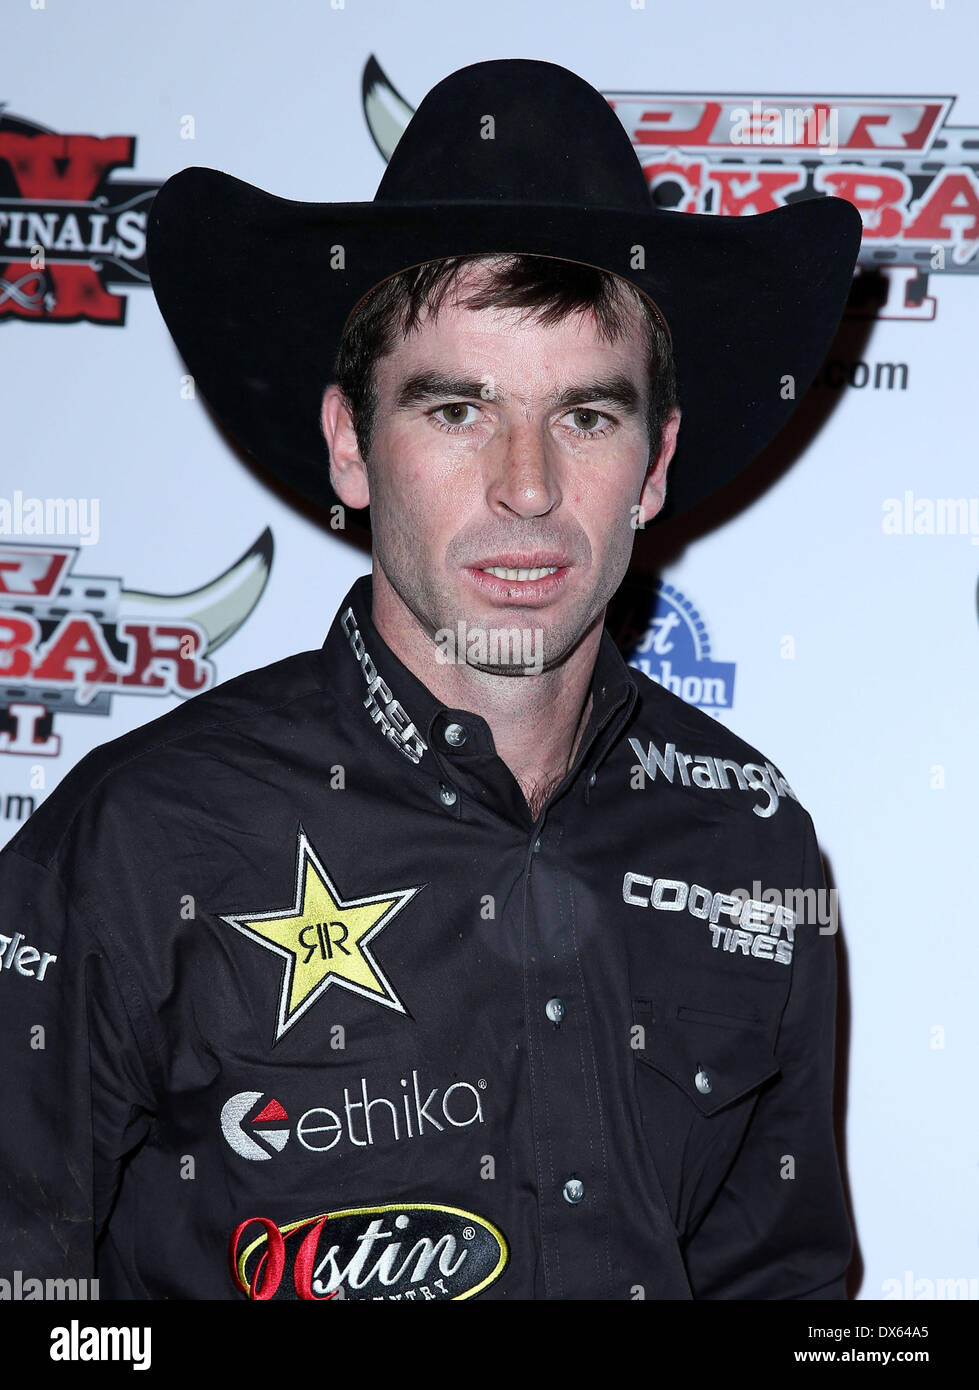 Fabiano Vieira Professional Bull Rider Superstars walk the red carpet at PBR Rock Bar inside The Miracle Mile Shops at Planet Hollywood Resort and Casino Las Vegas, Nevada - 26.10.12 Featuring: Fabiano Vieira Where: United States When: 26 Oct 2012 - Stock Image